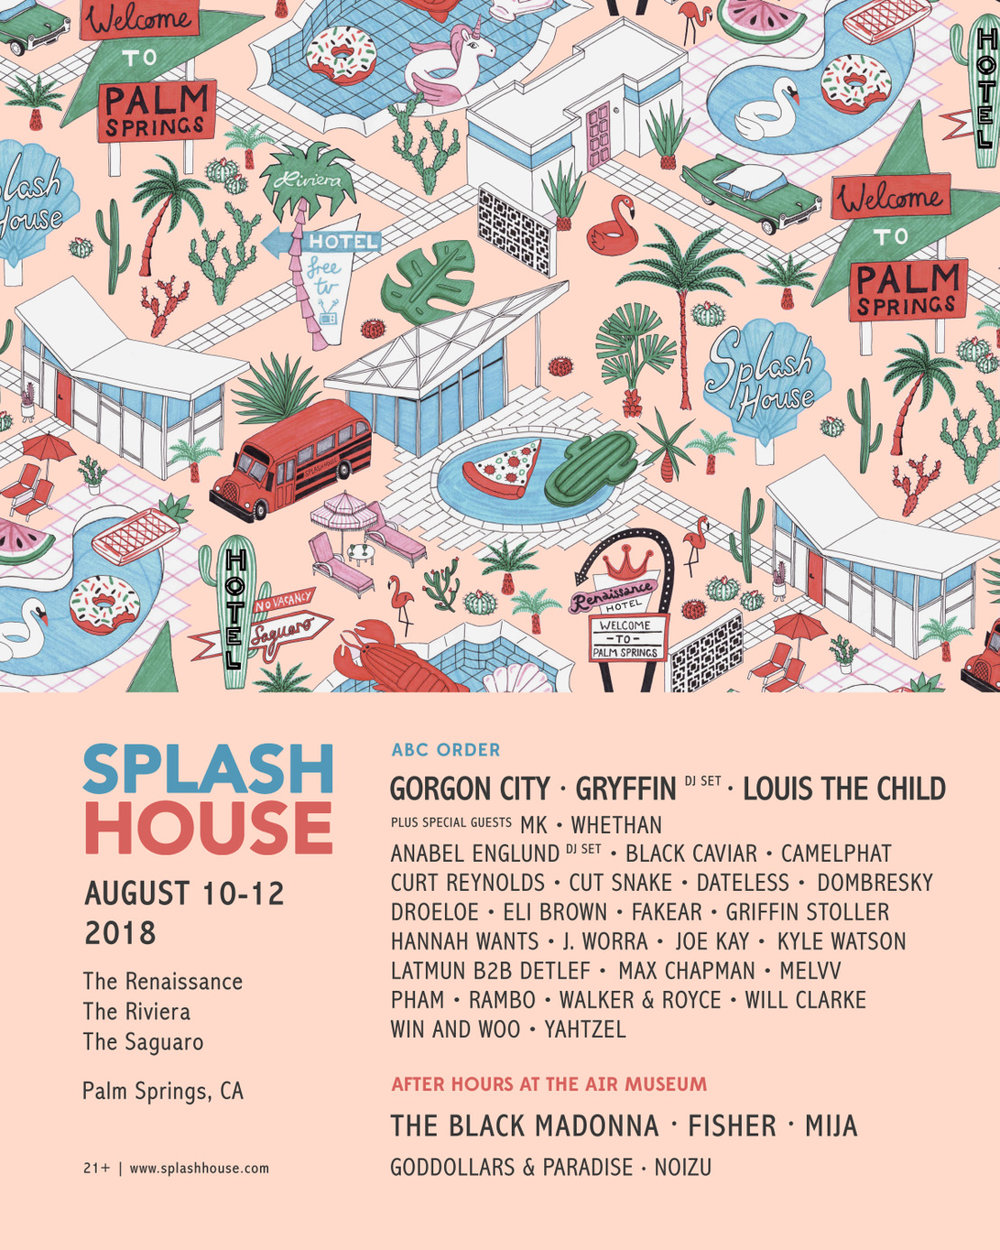 Splash House August Lineup 2018.jpeg